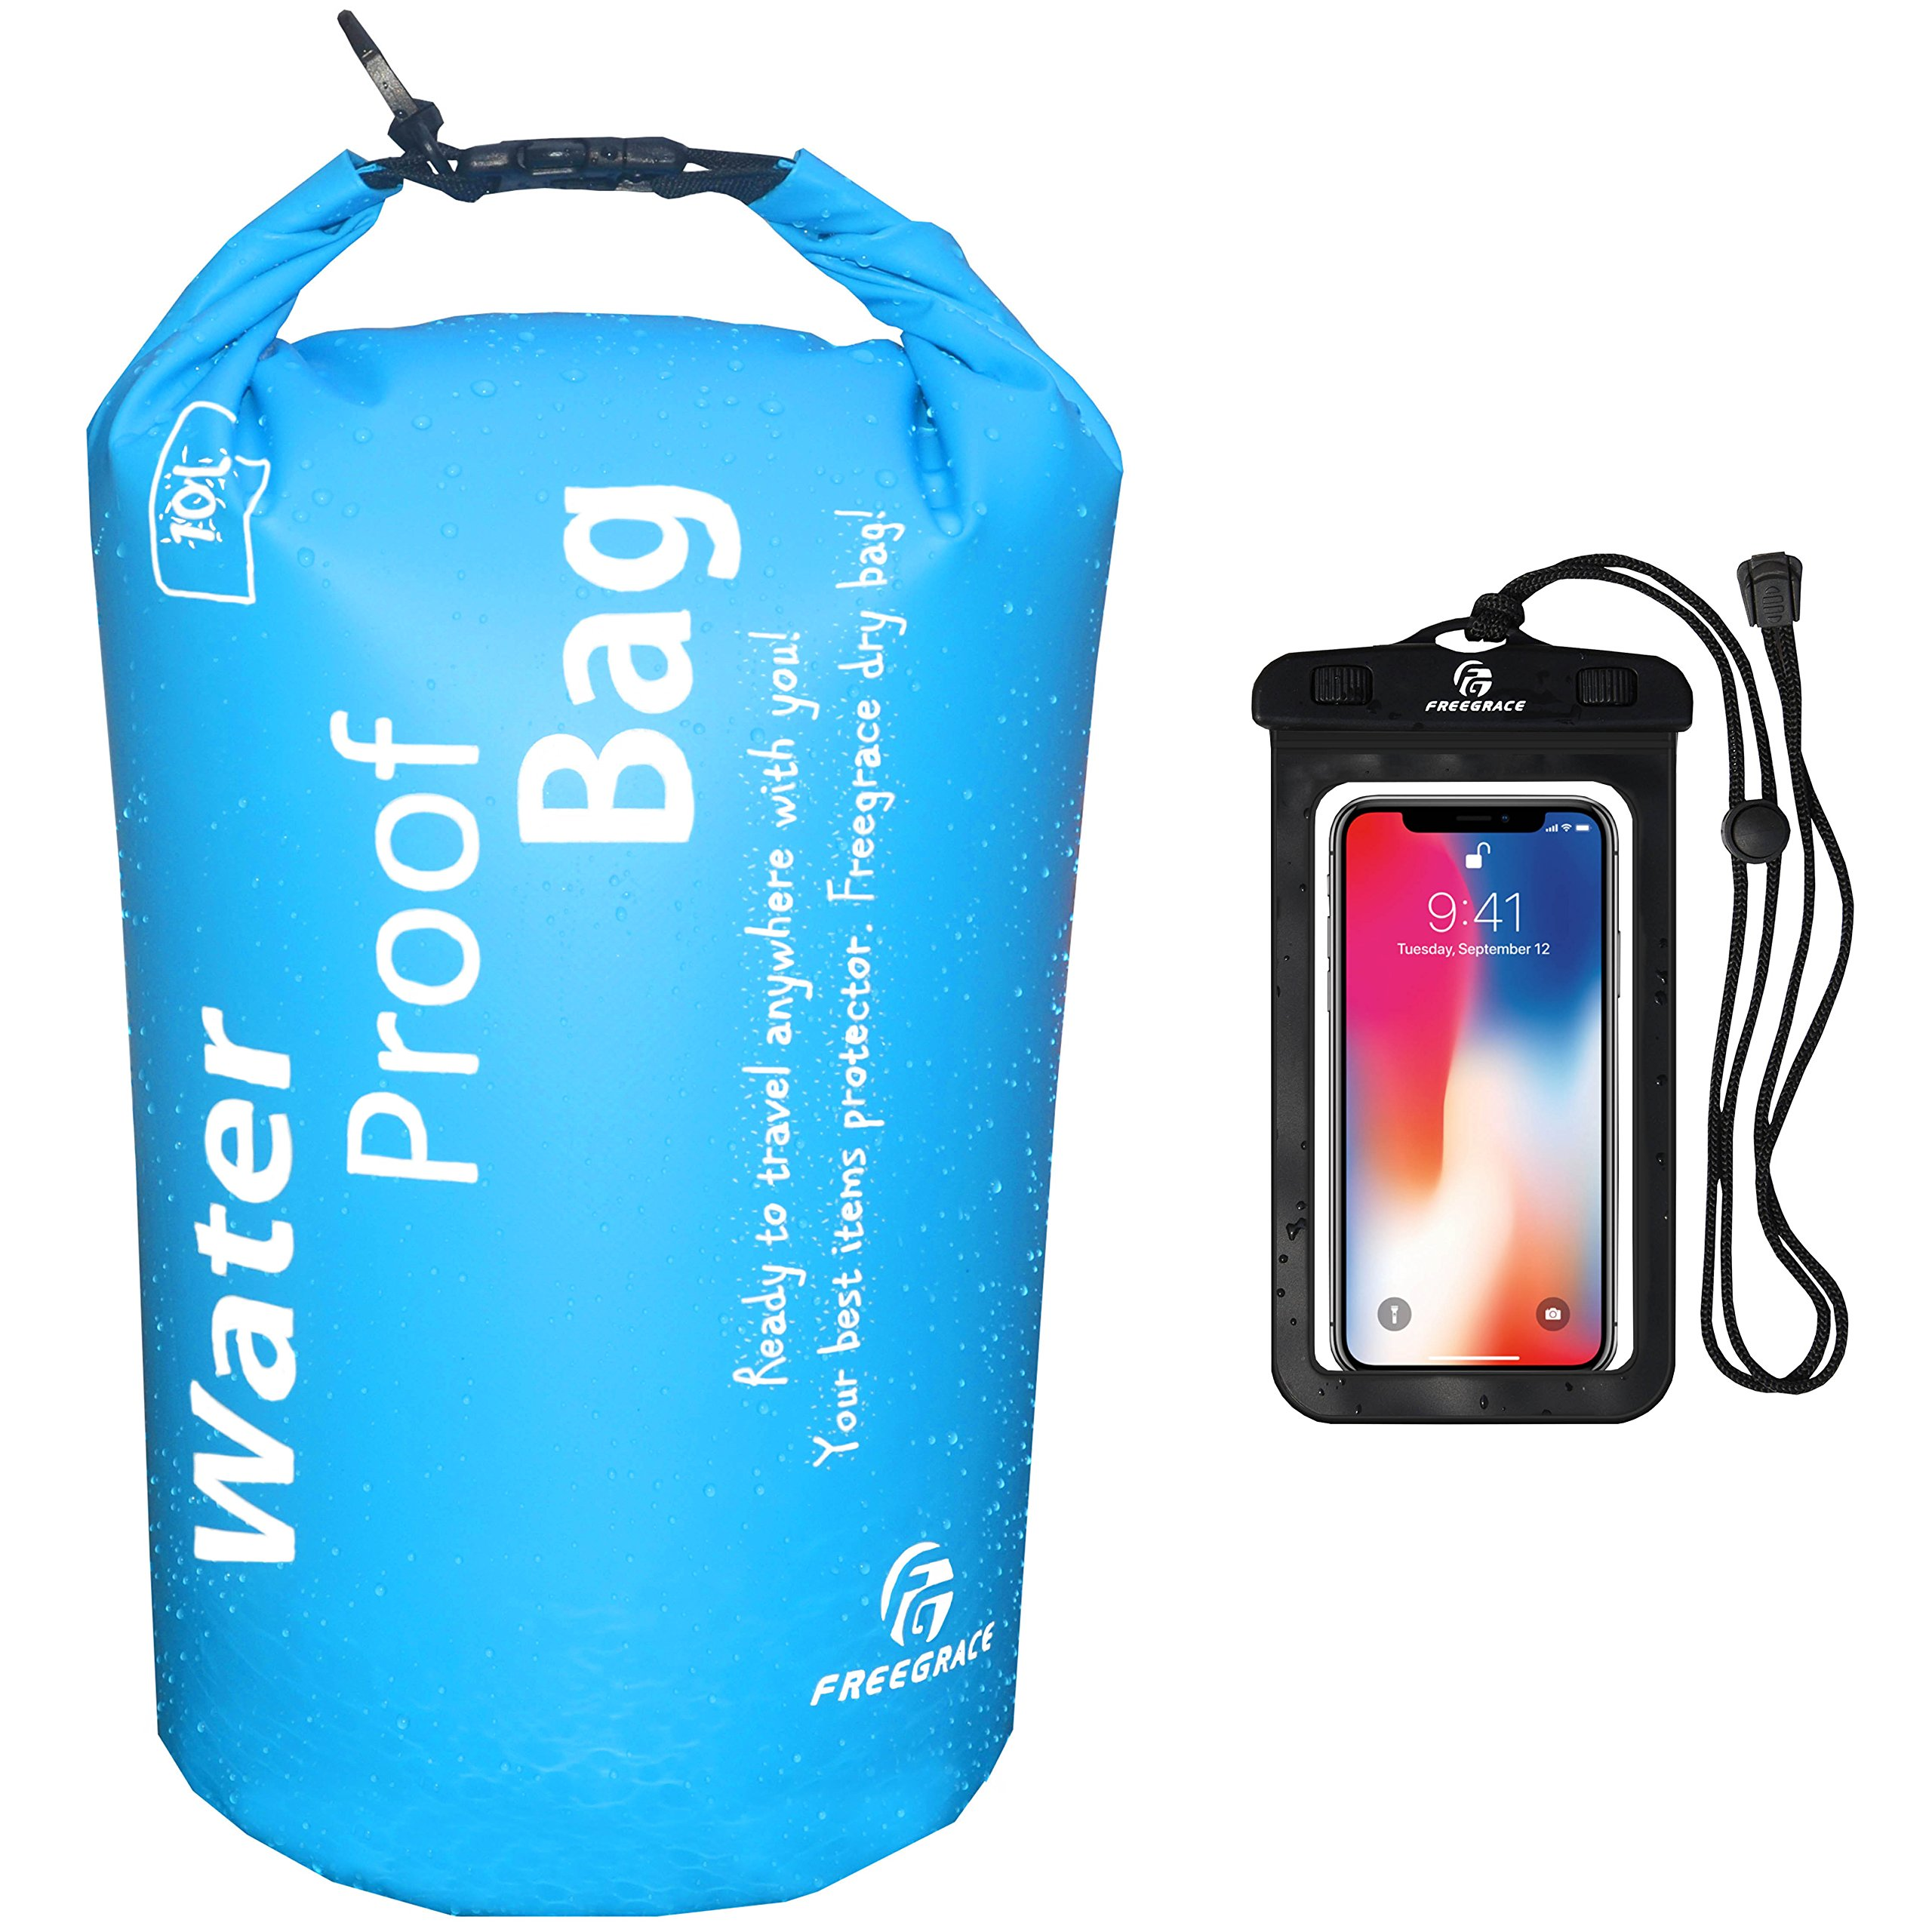 Freegrace Waterproof Dry Bag - Lightweight Dry Sack with Seals and Waterproof Case - Float on Water - Keeps Gear Dry for Kayaking, Beach, Rafting, Boating, Hiking, Camping and Fishing